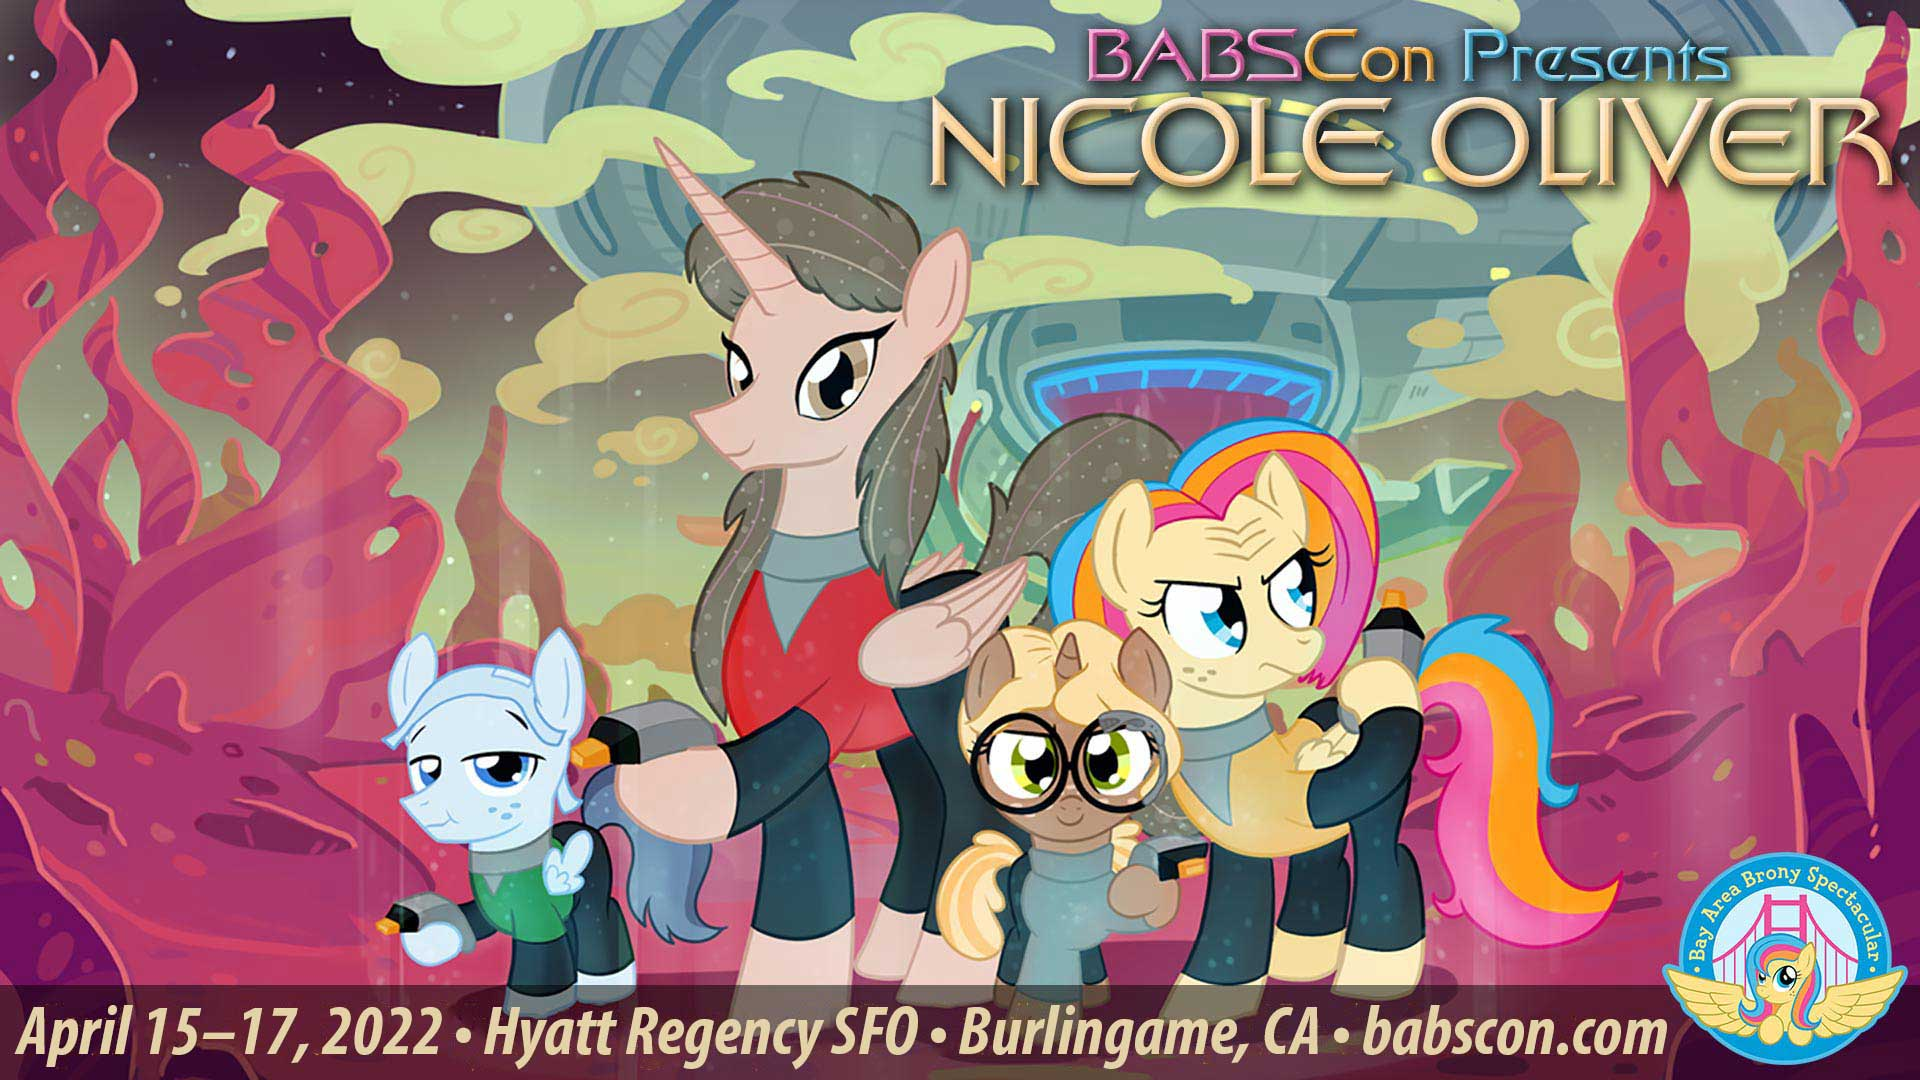 BABSCon 2022 Voyages with Nicole Oliver